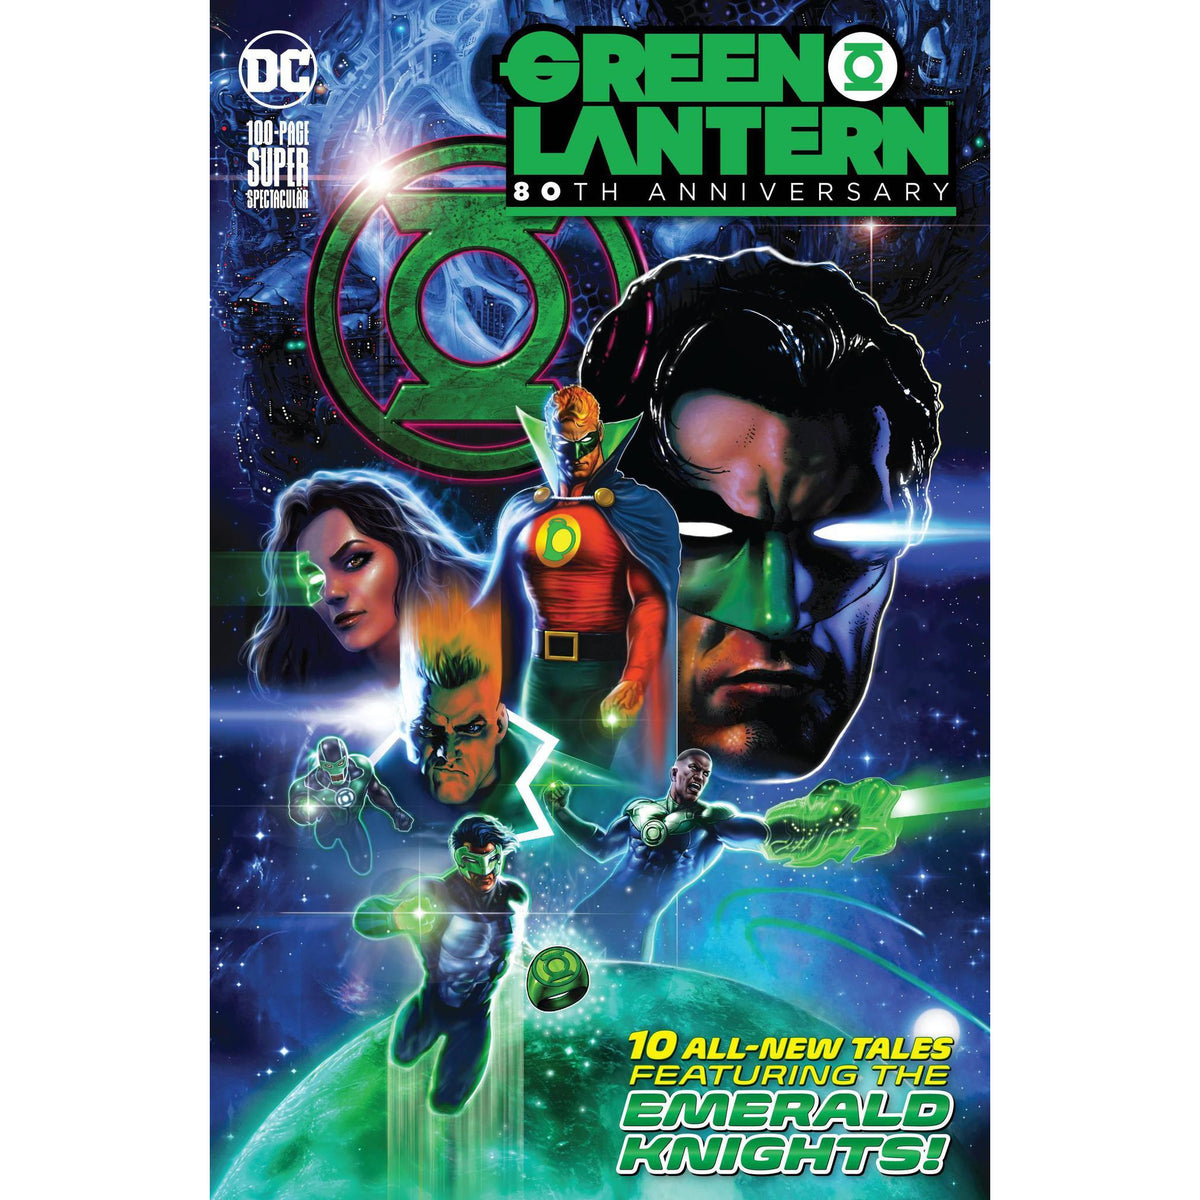 GREEN LANTERN 80TH ANNIVERSARY 100 PAGE SUPER SPECTACULAR #1 - SHARP MAIN COVER A - DC COMICS